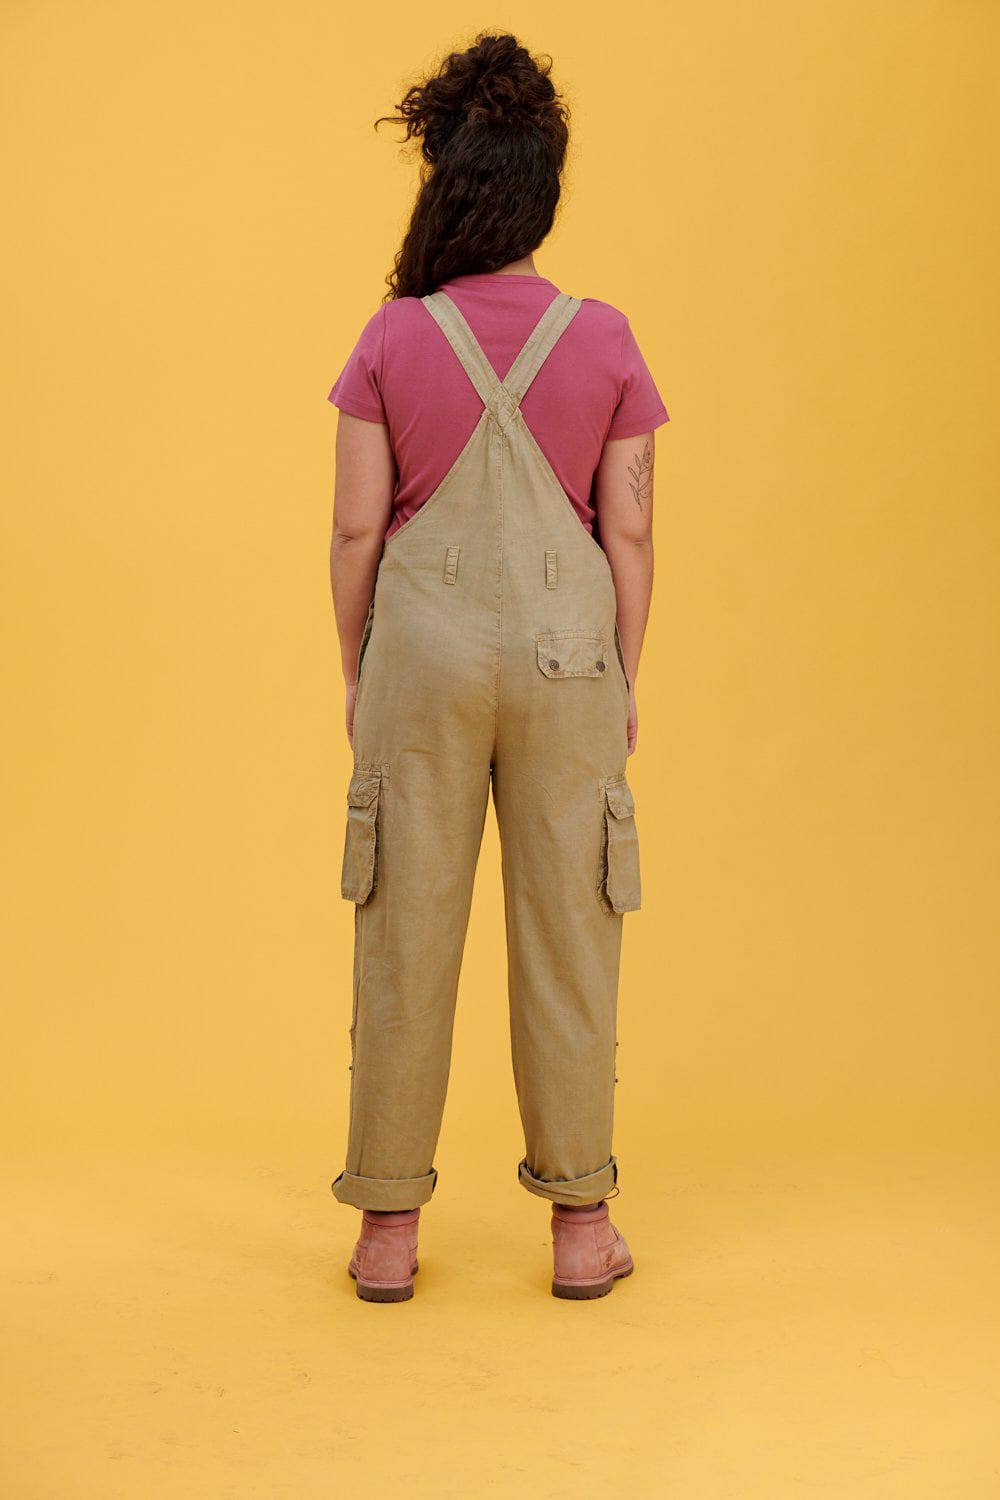 Lucy & Yak Dungarees 'Colorado' Cargo Dungarees in Sand - Tall